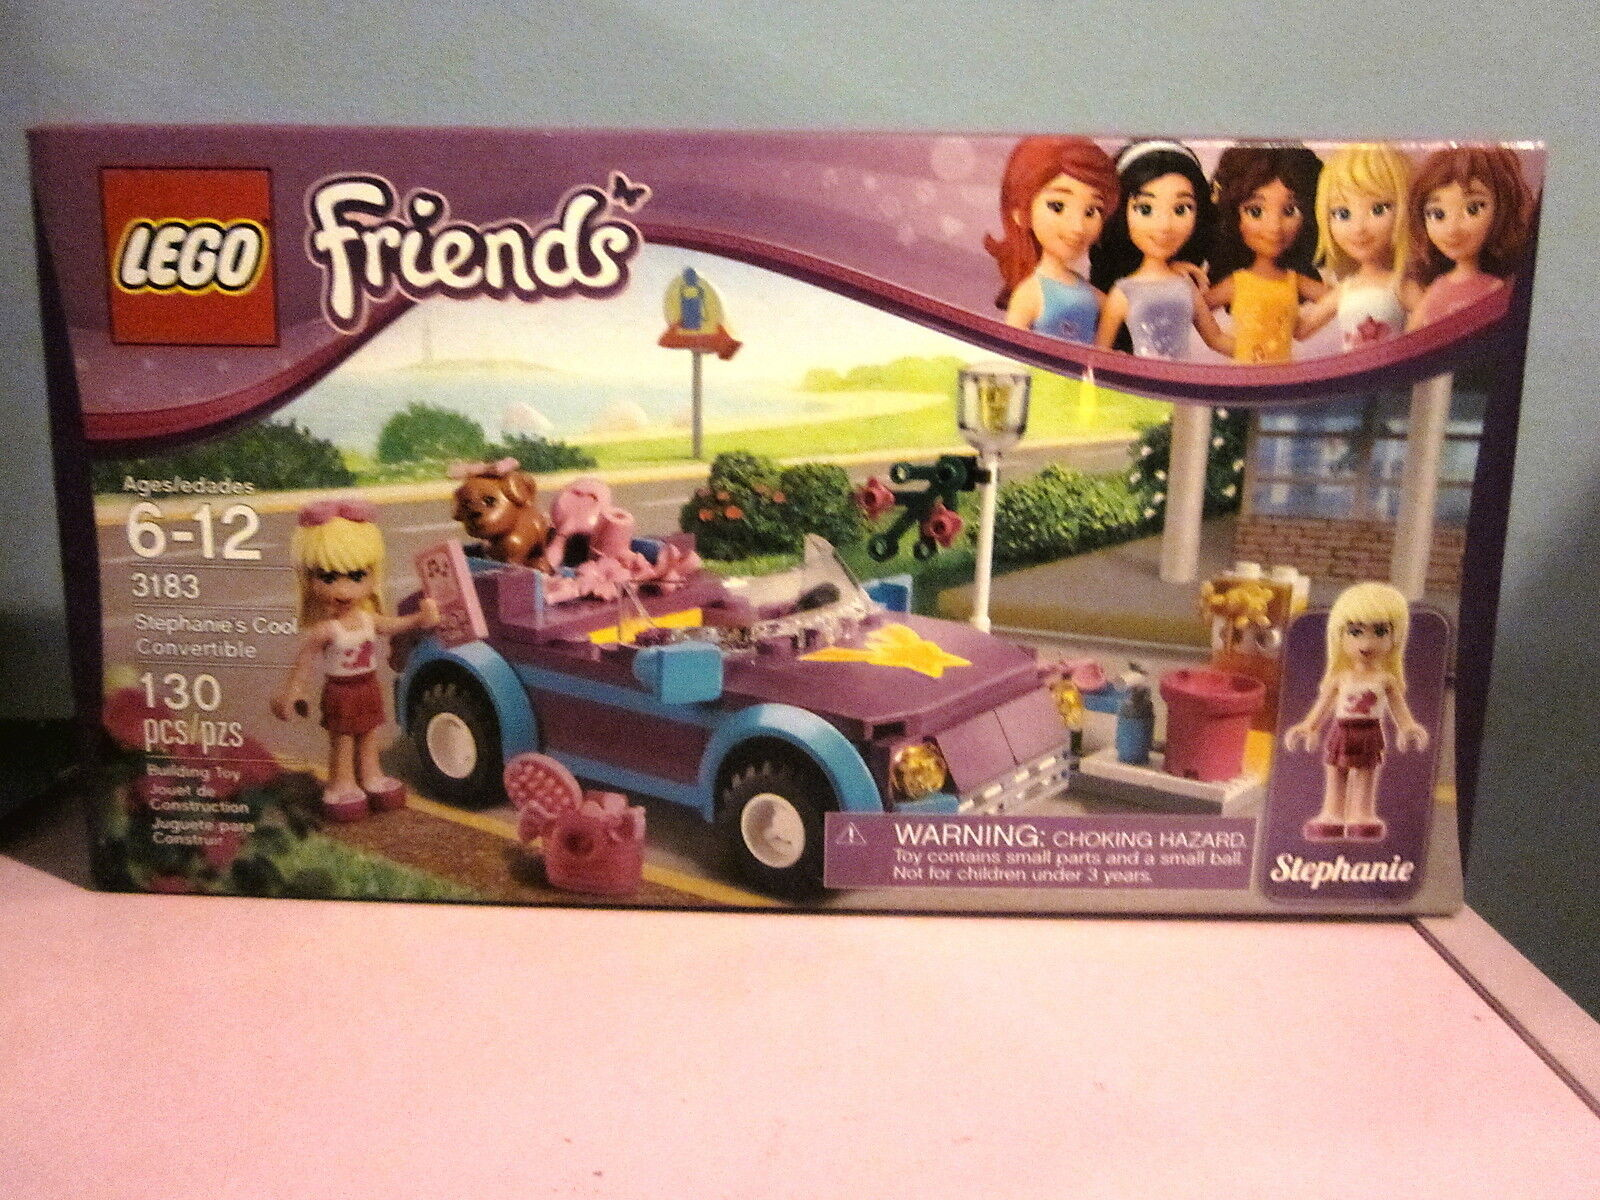 Lego Friends 3183 Stephanie's Cool Congreenible